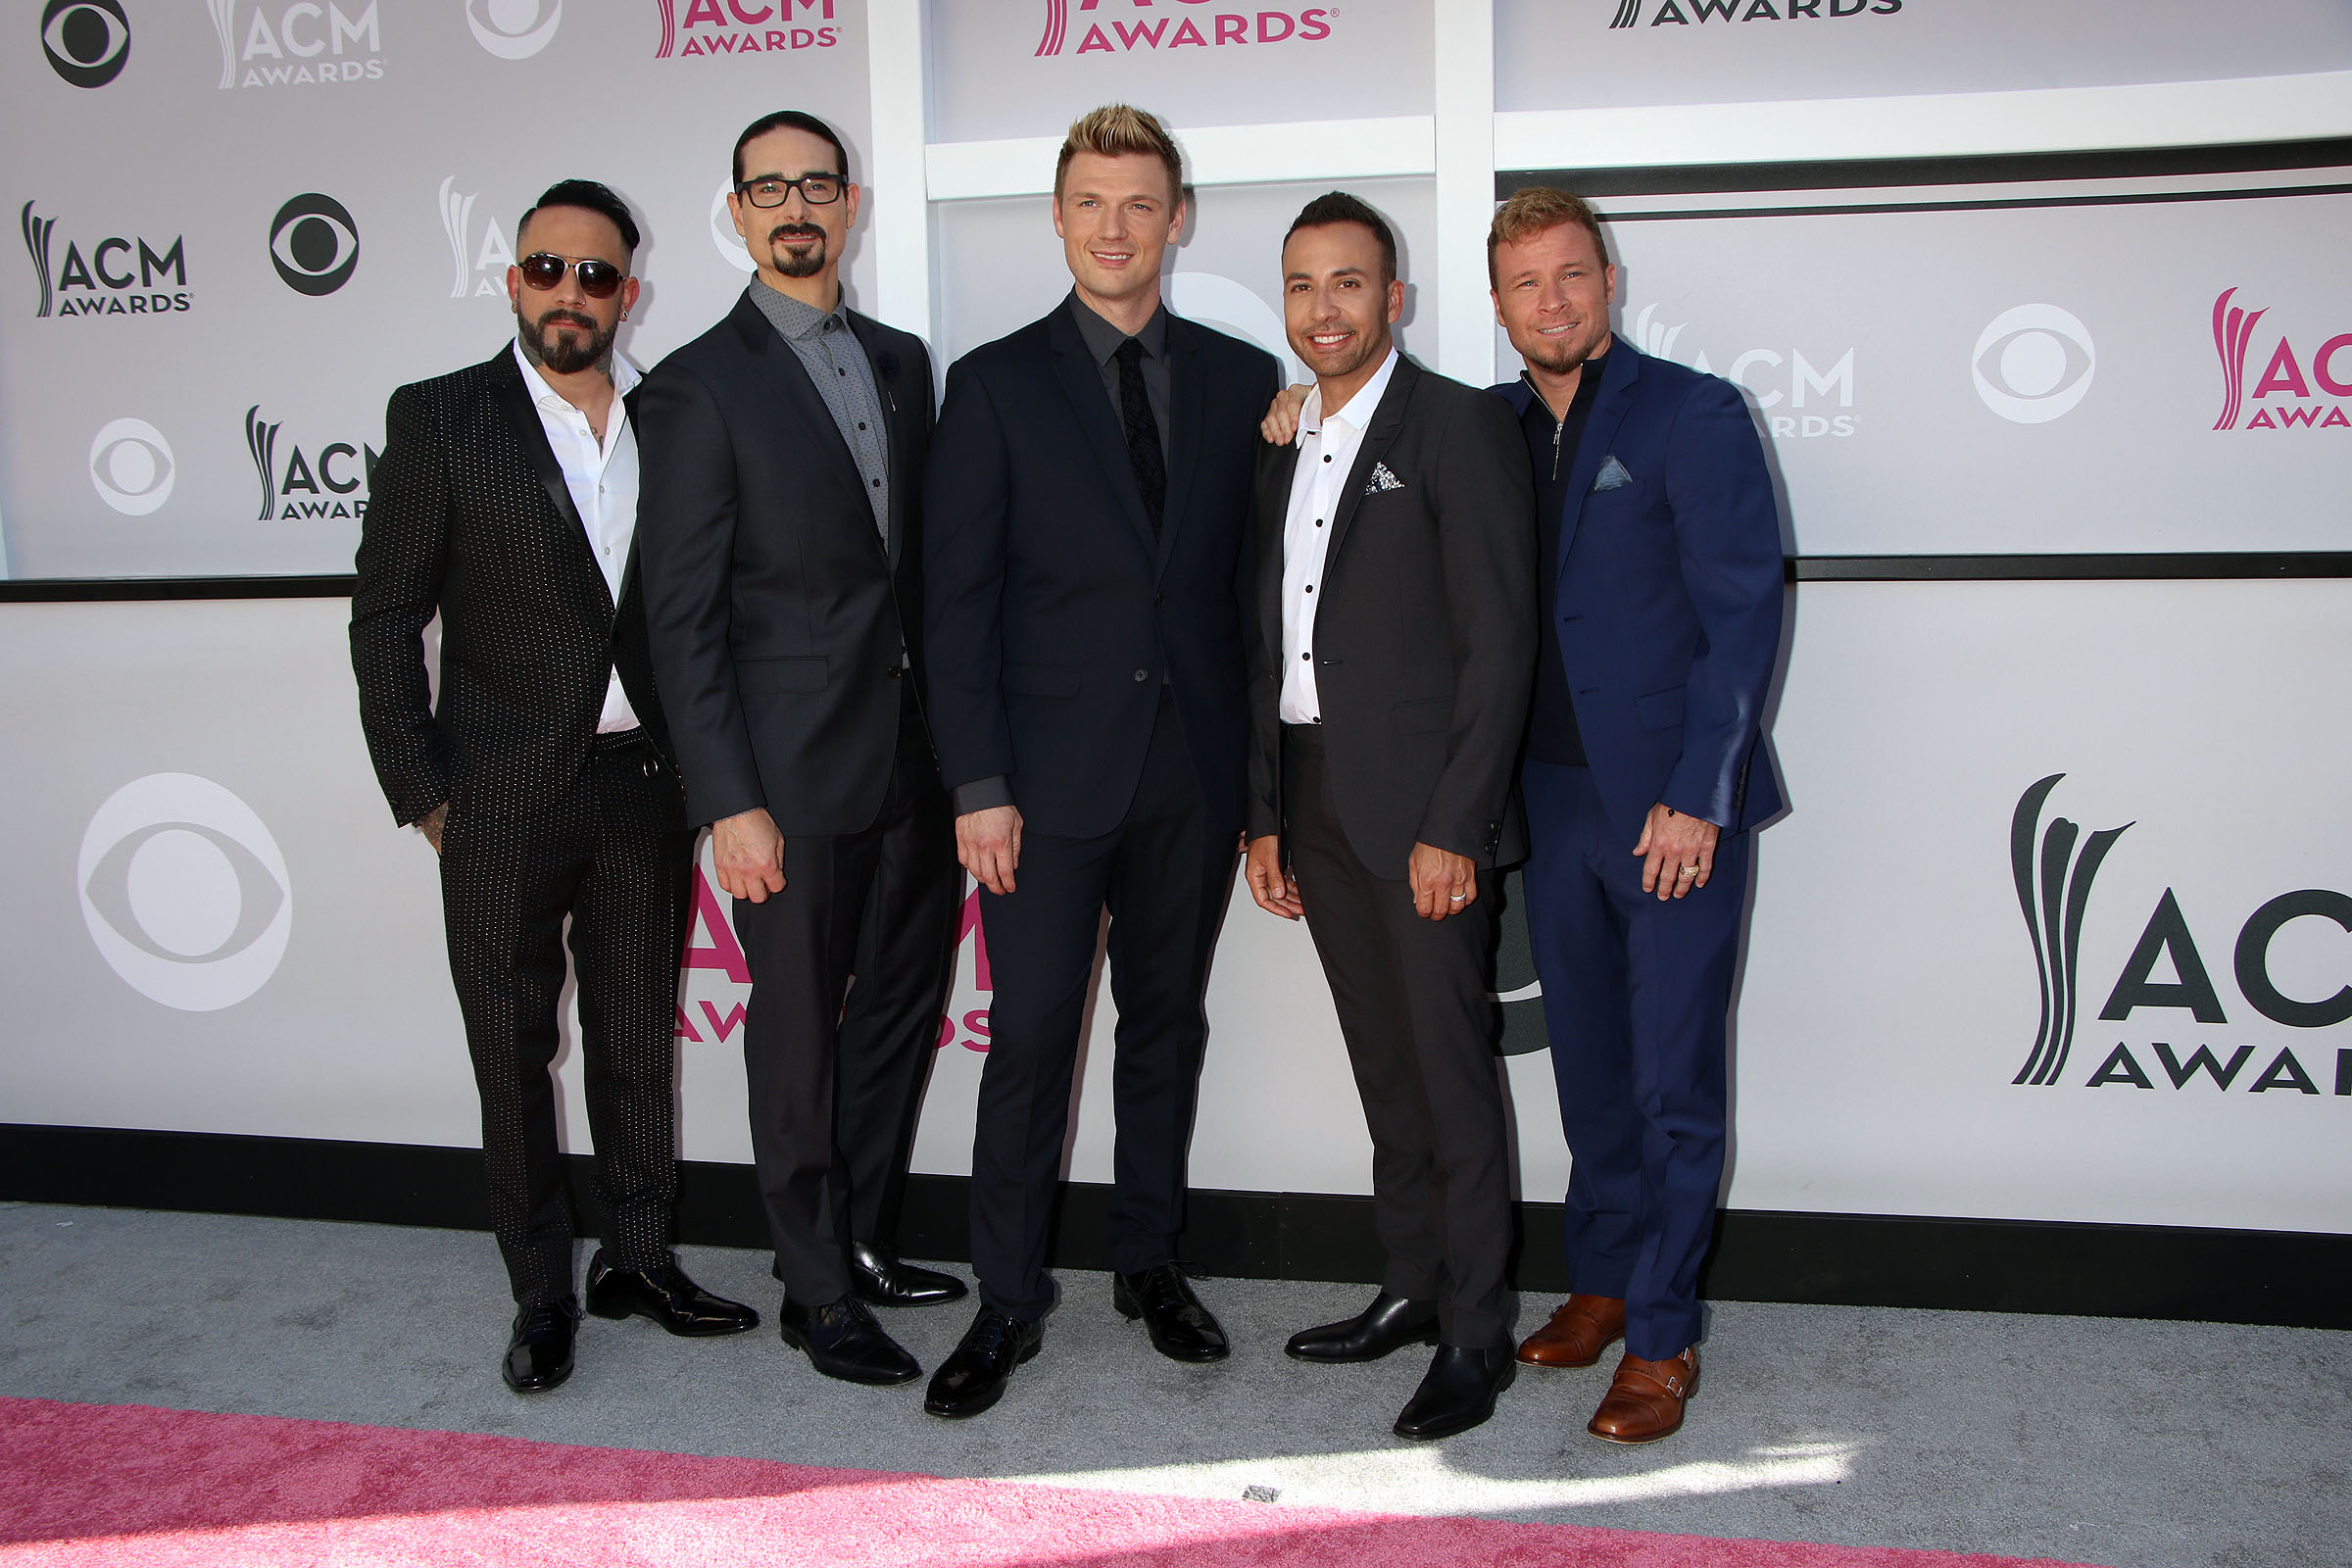 Backstreet Boys attending the 52nd Academy Of Country Music Awards at the T-Mobile Arena in Las Vegas, Nevada.  Featuring: Backstreet Boys, AJ McLean, Howie D., Nick Carter, Kevin Richardson, Brian Littrell Where: Las Vegas, Nevada, United States When: 02 Apr 2017 Credit: DJDM/WENN.com